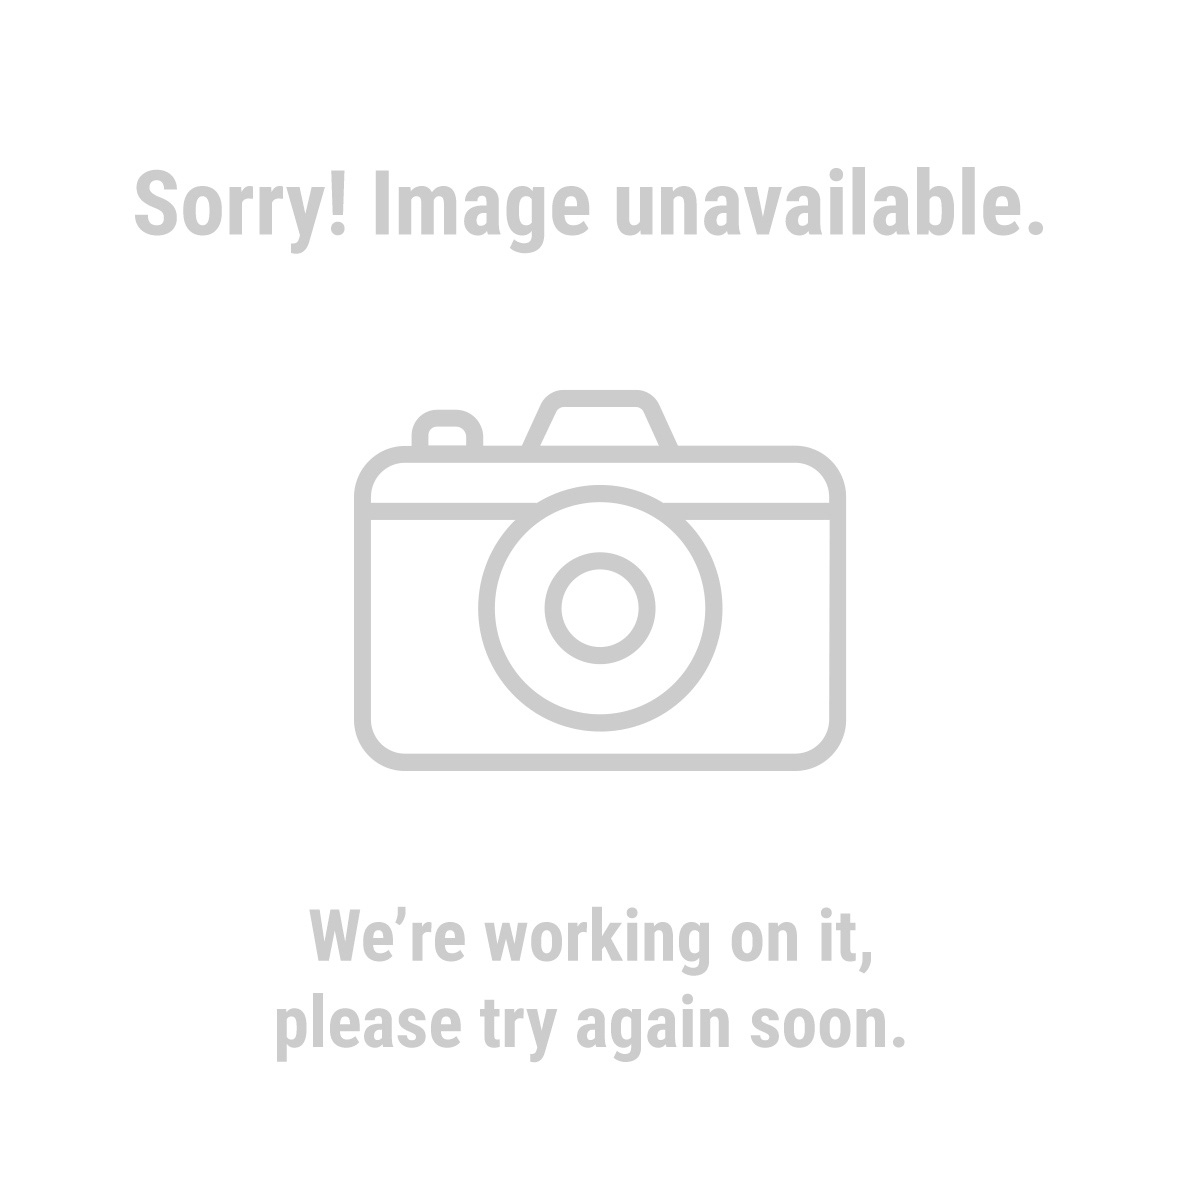 Plastic Covers Garages : Ft portable shed